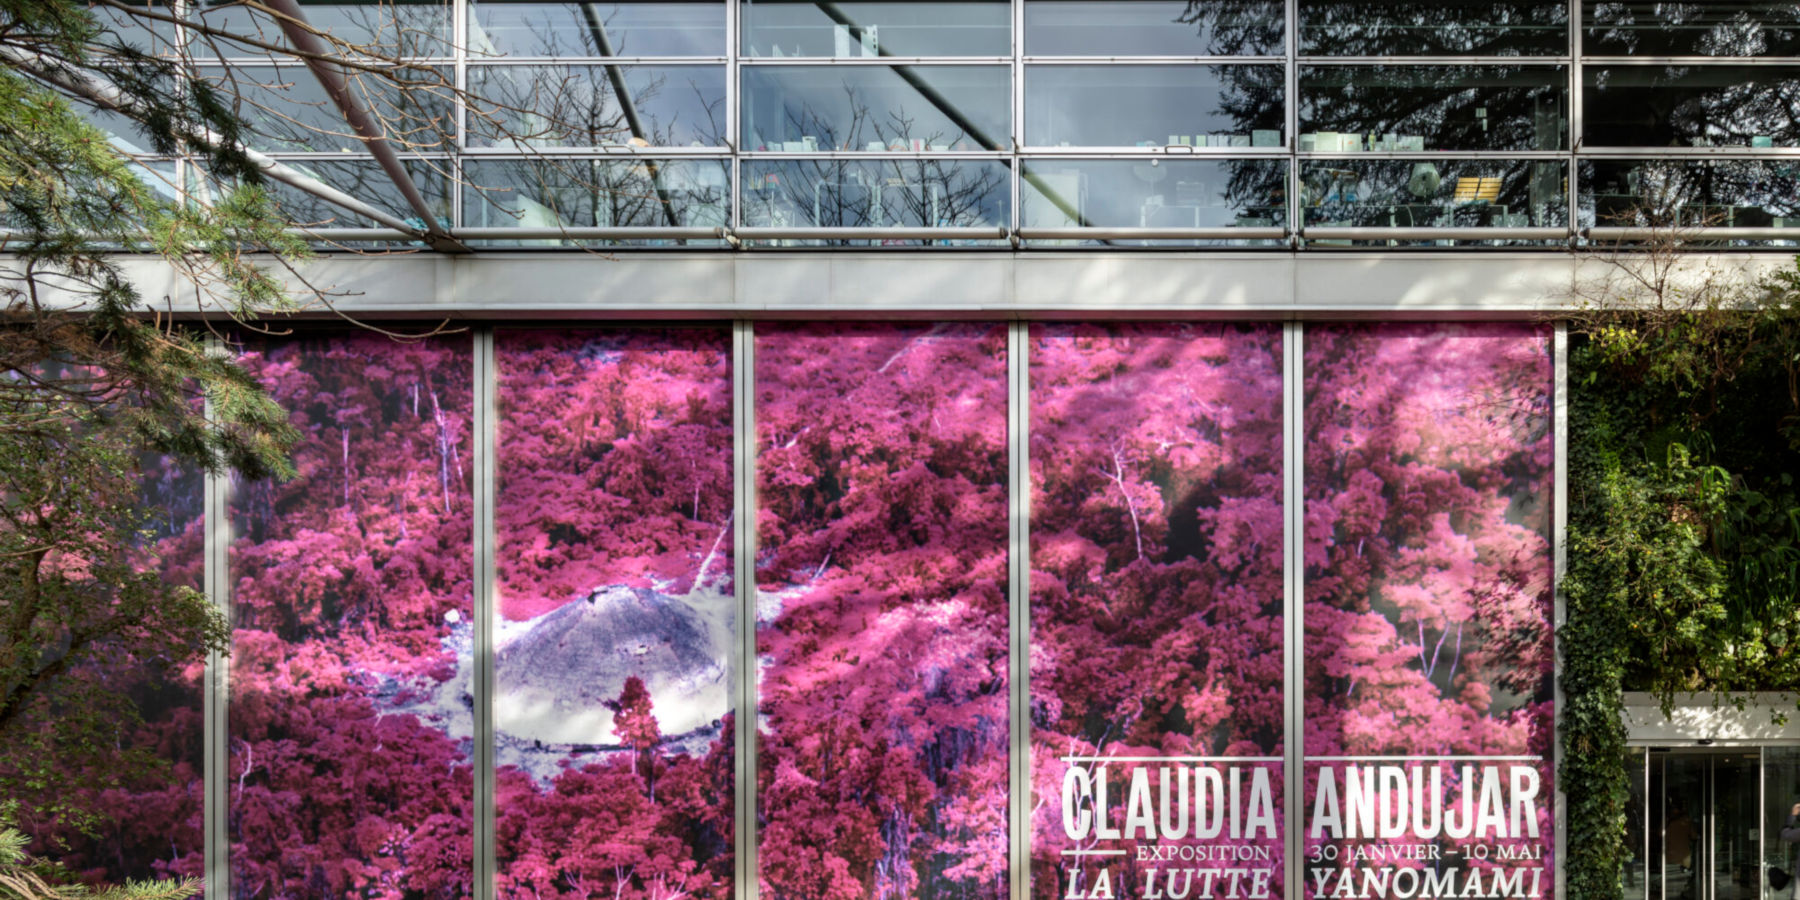 Fondation Cartier Claudia Andujar 1